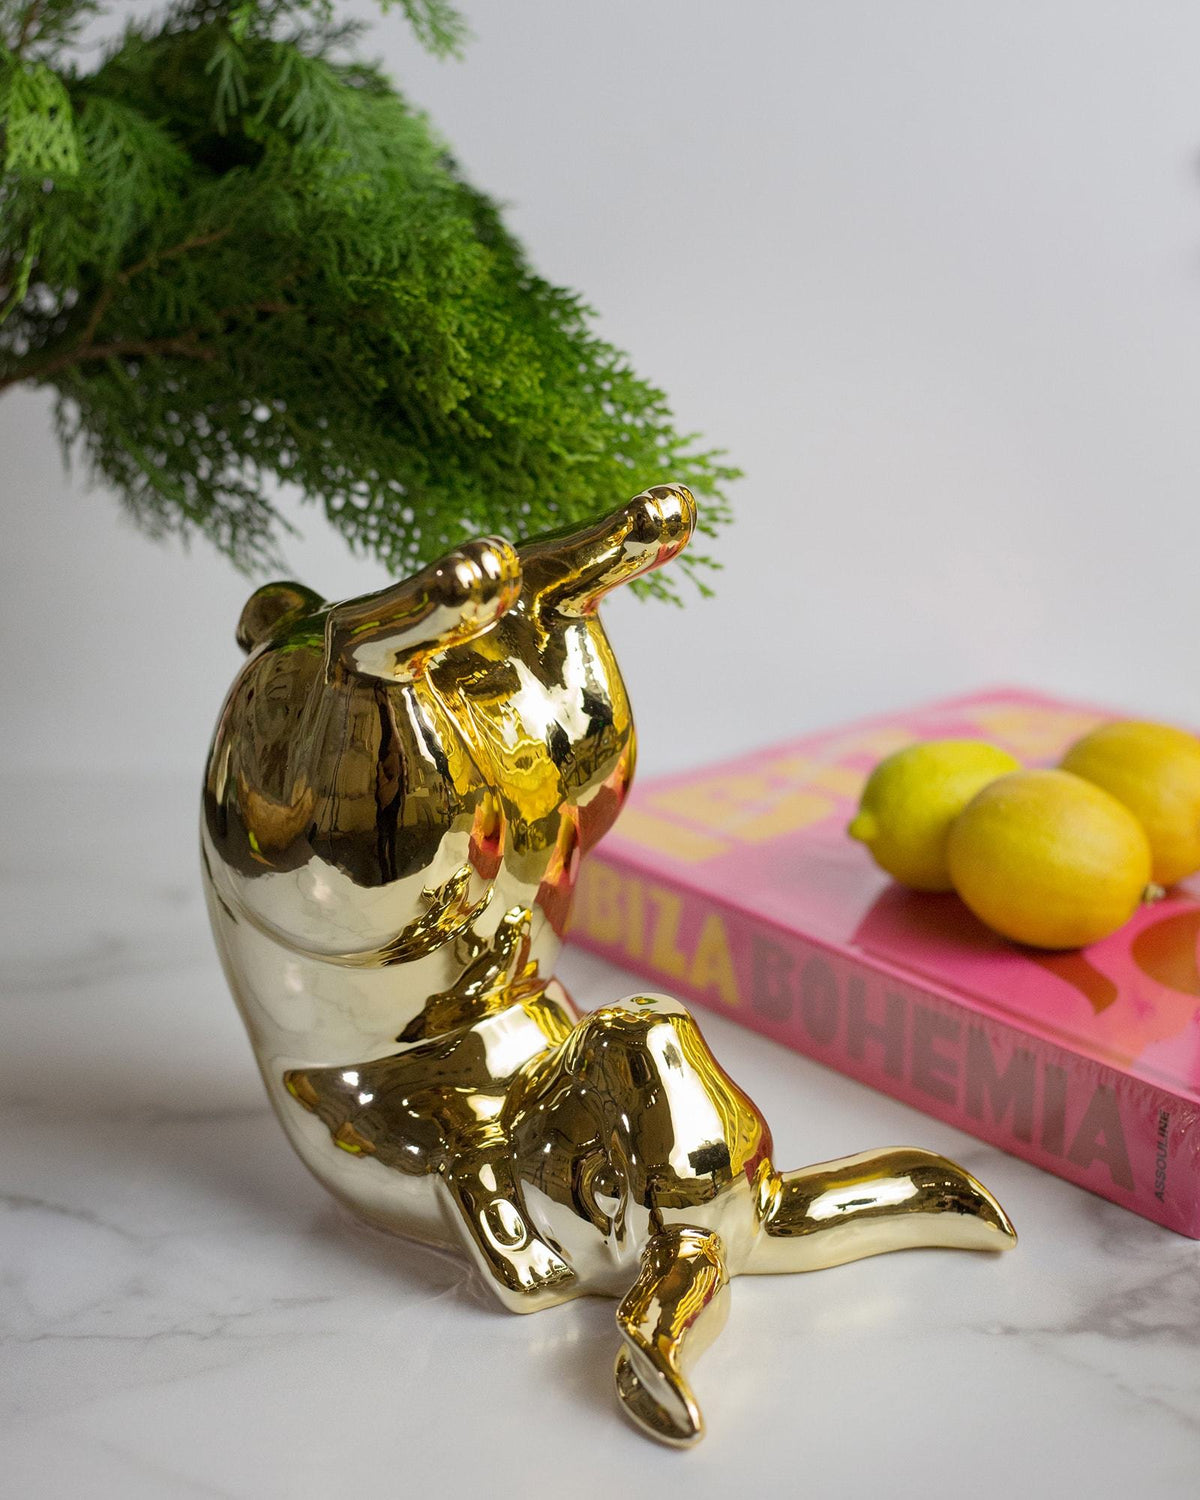 Bunny Gold Moneybox - Bum (detailed 2)